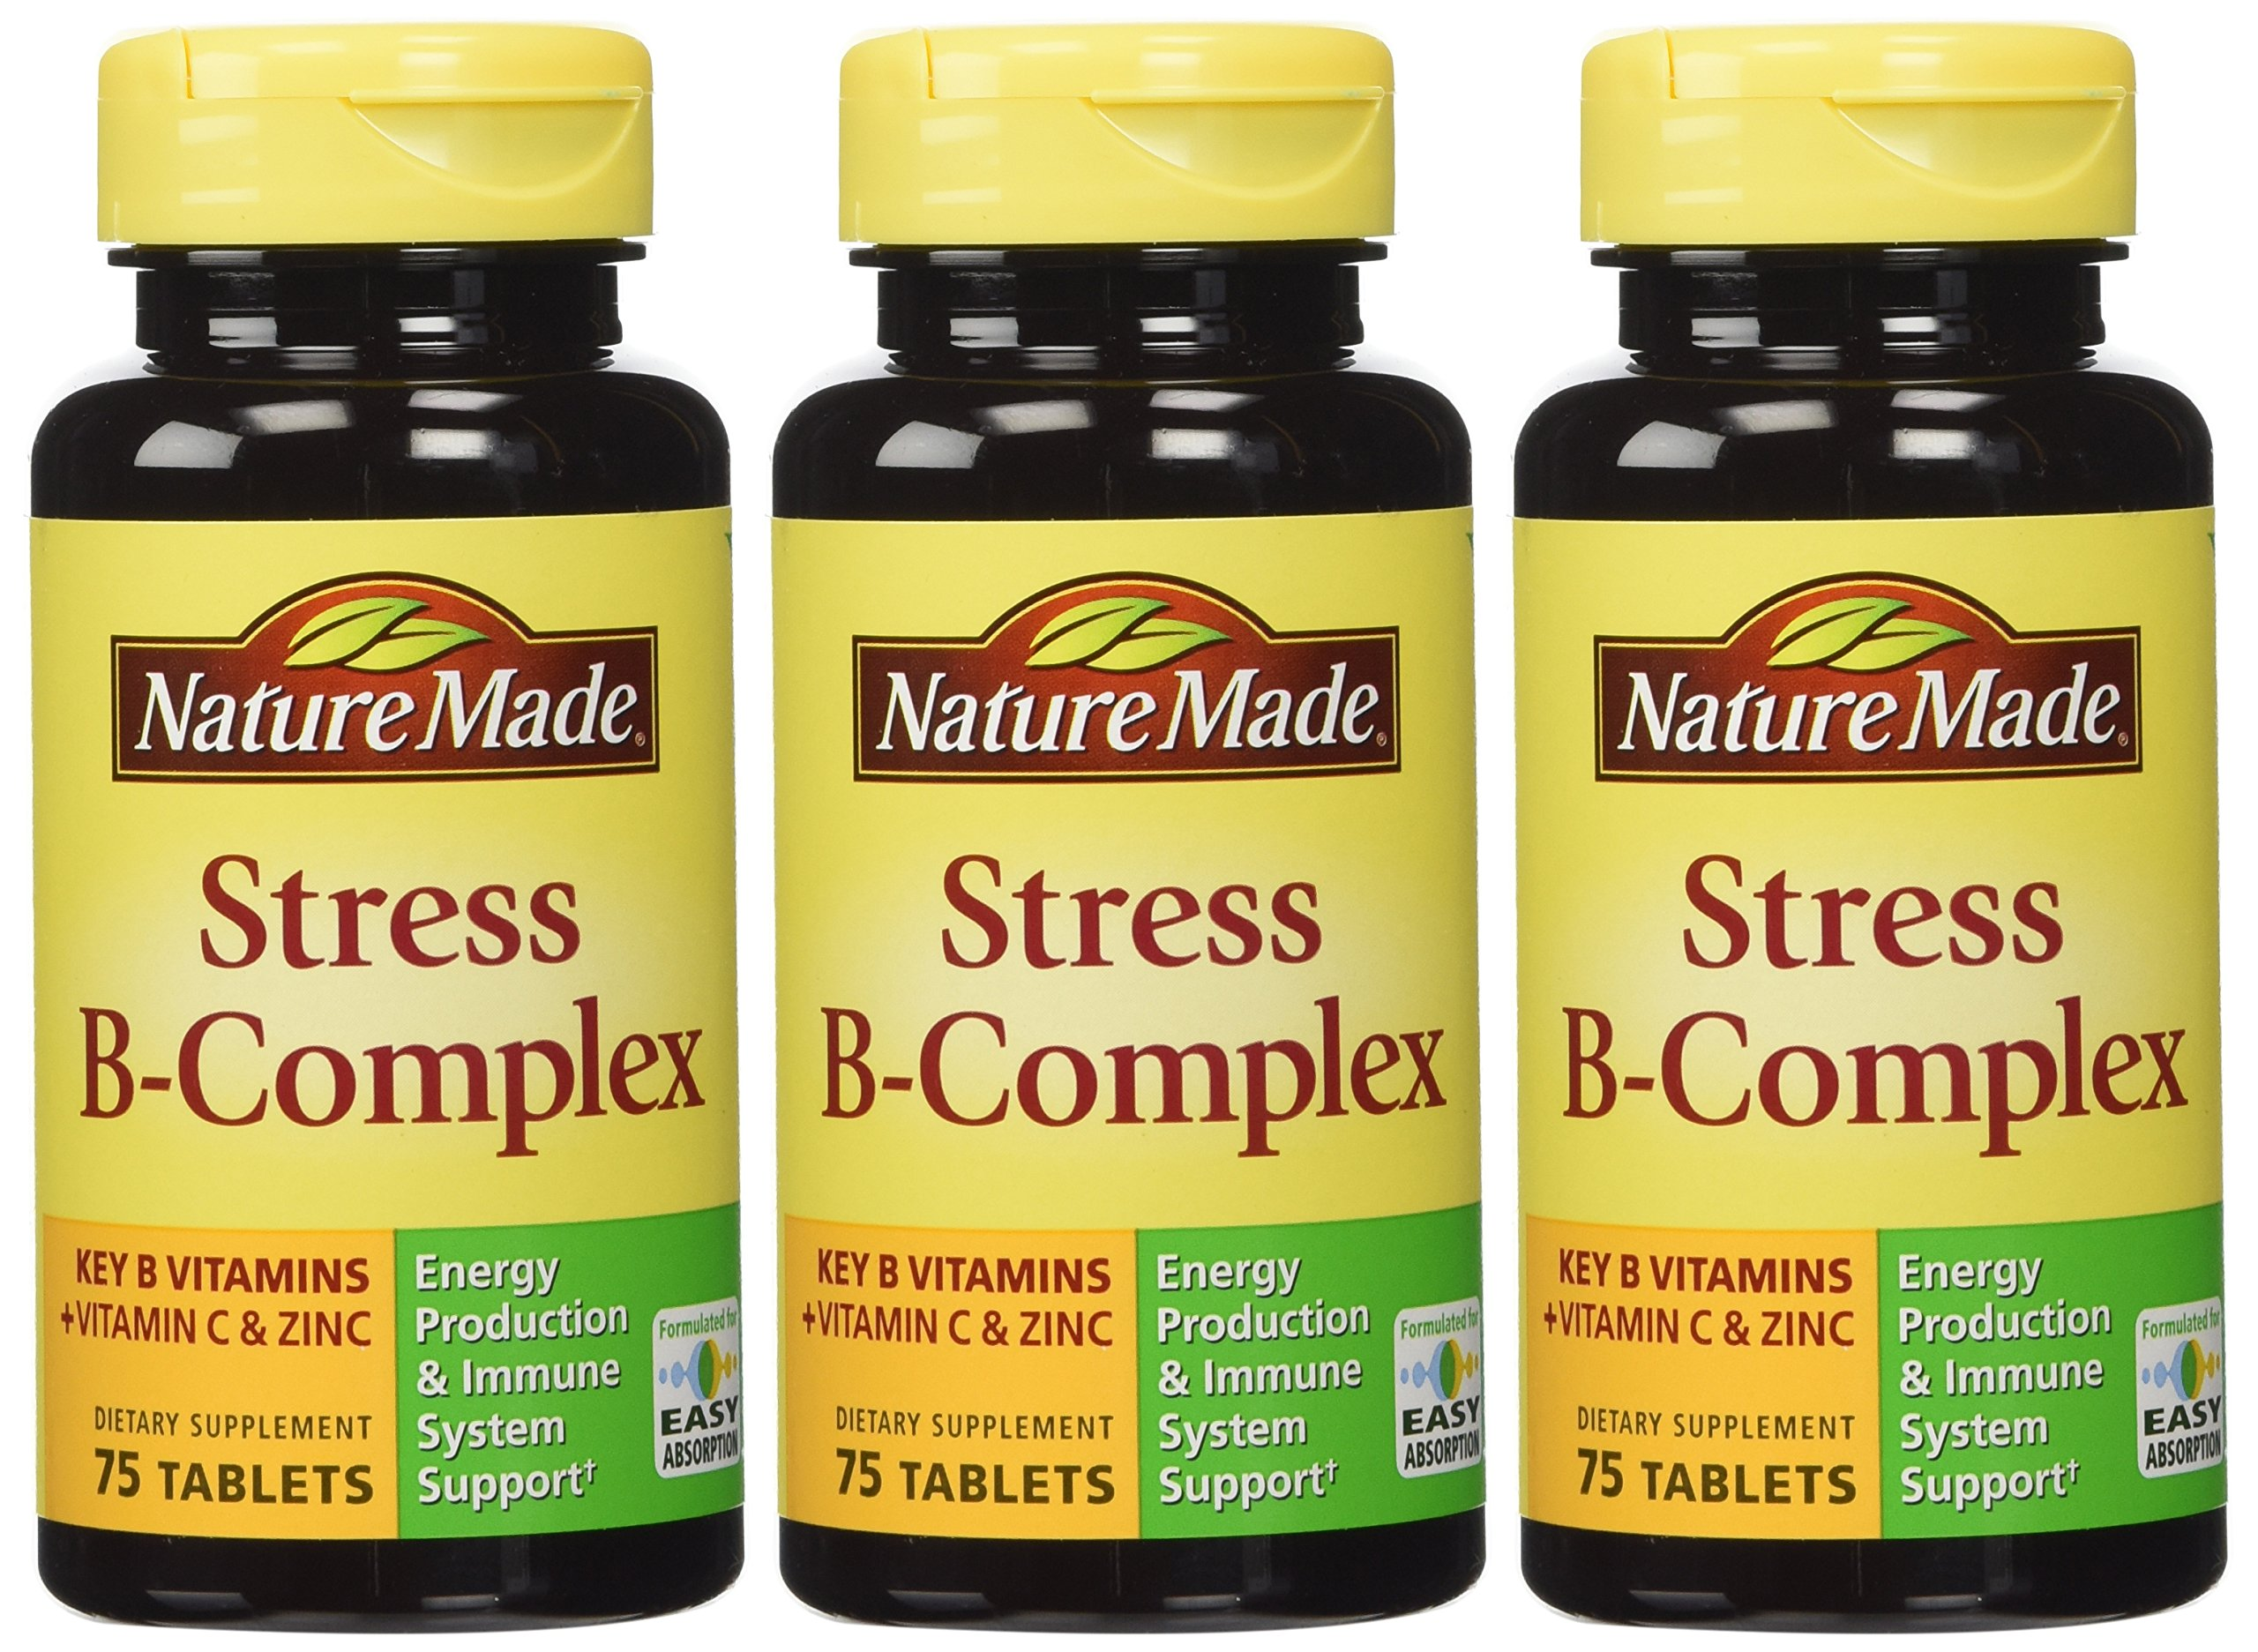 Nature Made Stress B Complex W Zinc Size 75ct (Pack of 3) 225 ct Total